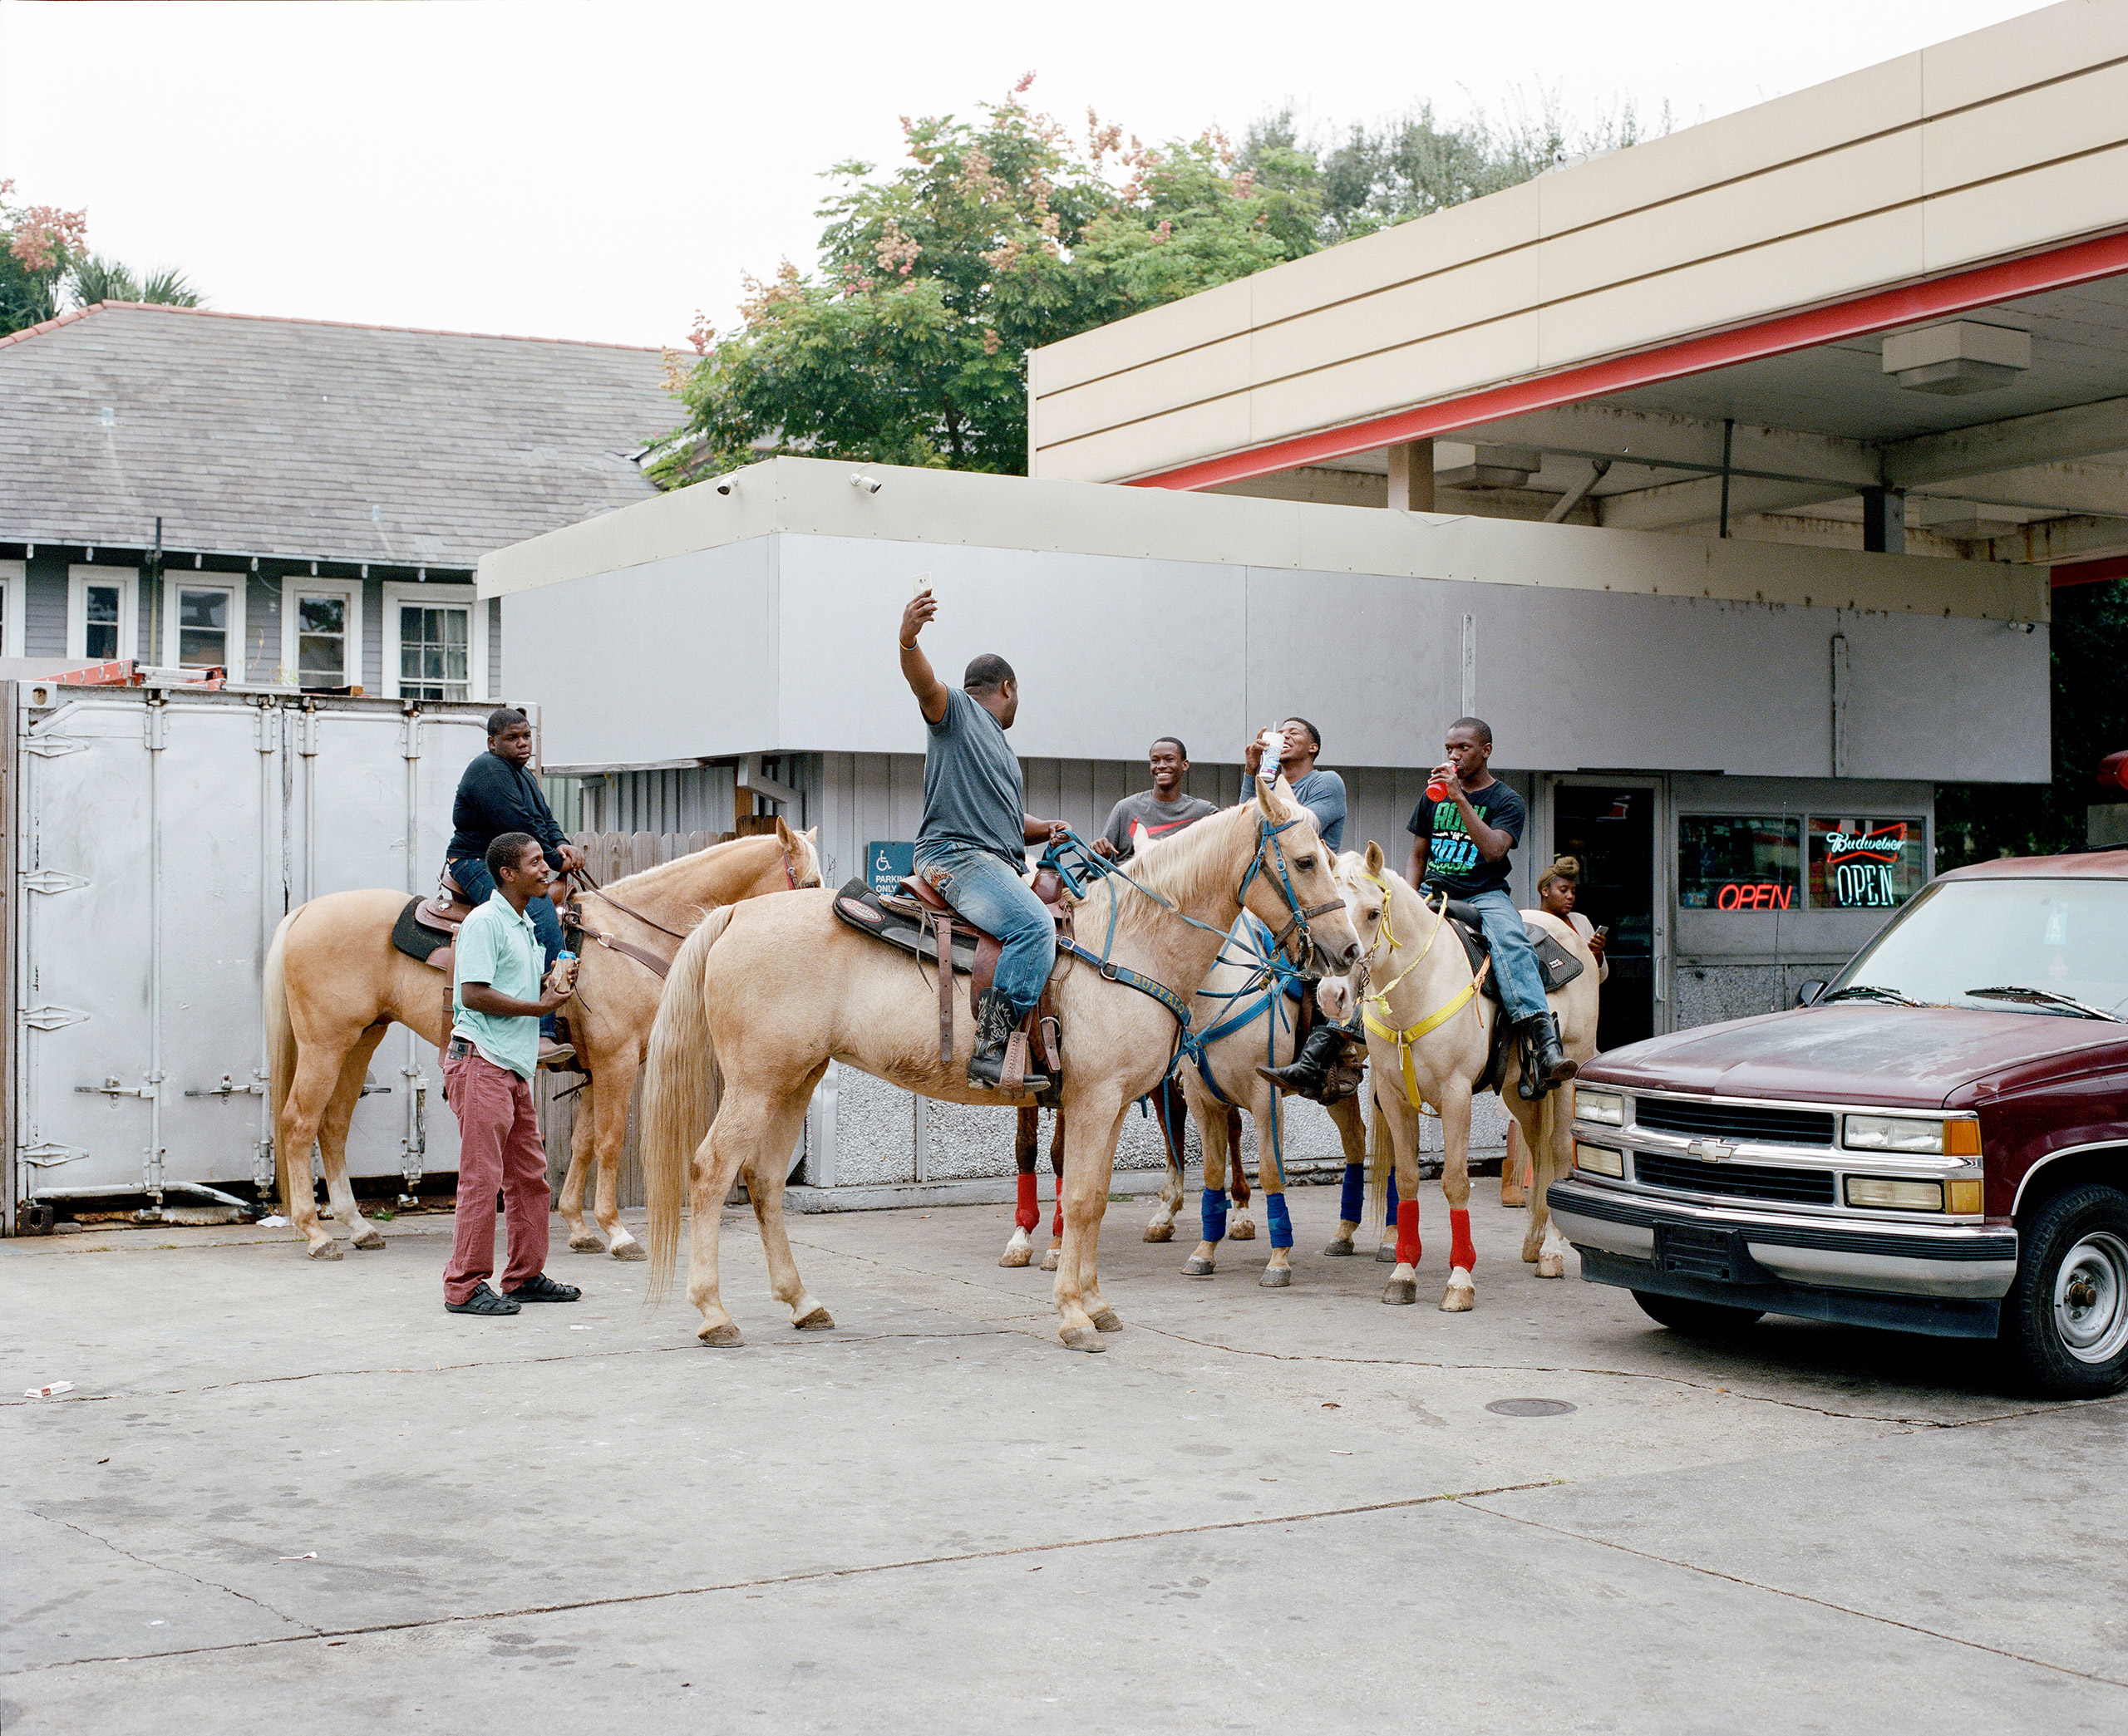 Riders gather at a gas station on Esplanade Ave. New Orleans, La. 2016